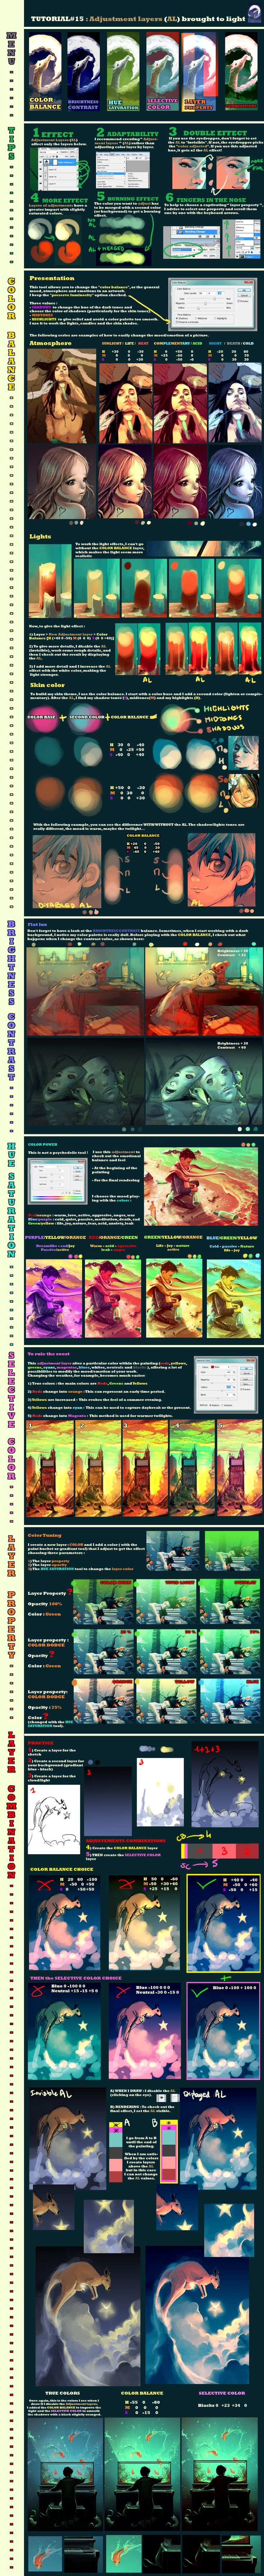 Tutorial 15 Adjustment layers brought to light by AquaSixio on deviantART